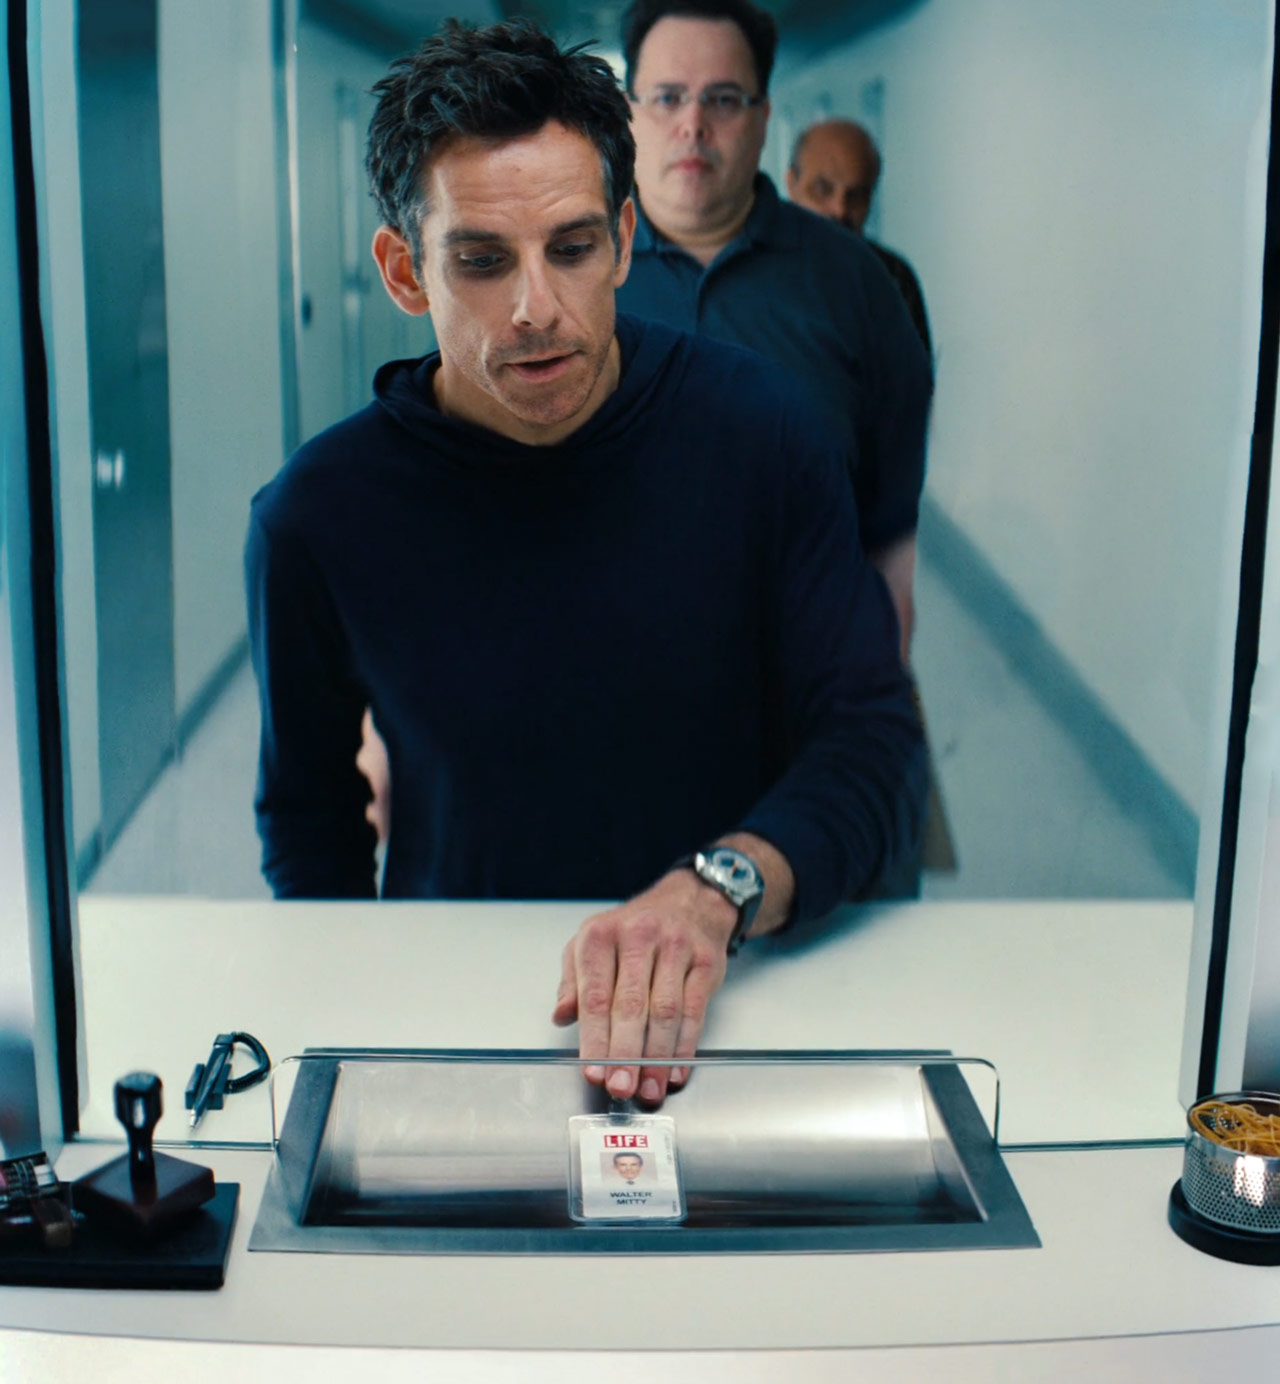 the-secret-life-of-walter-mitty_ben-stiller_check-3_film-panoramas